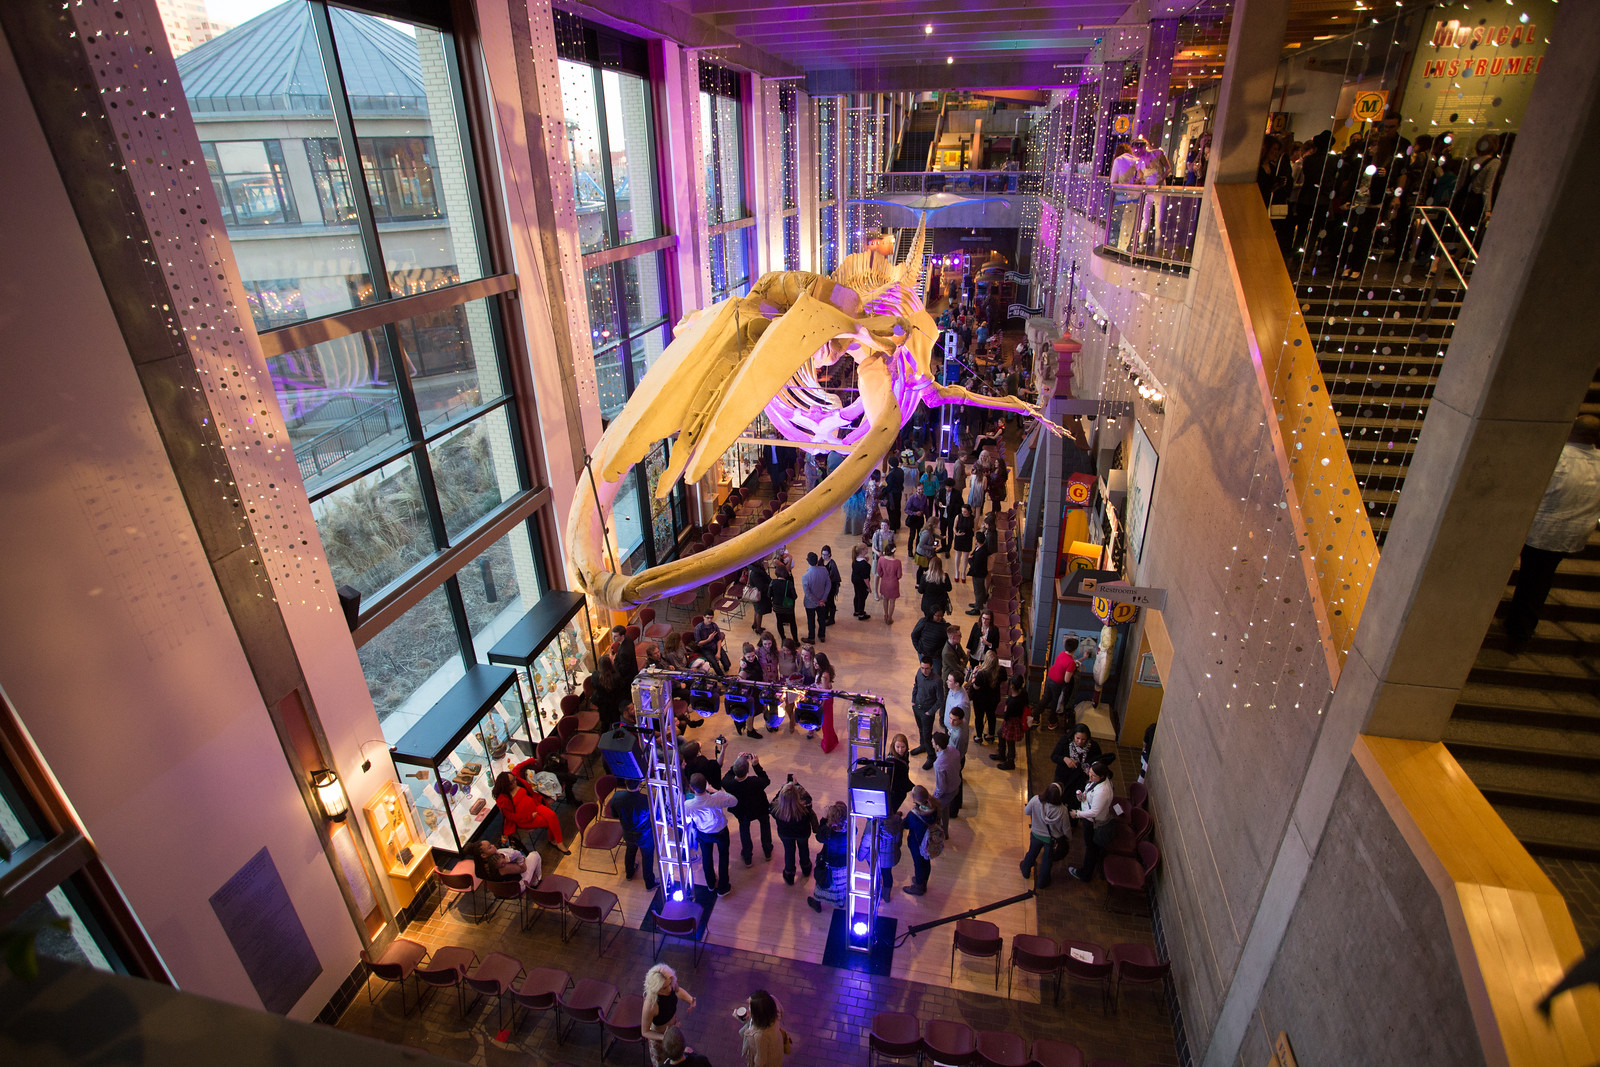 The Grand Rapids Public Museum decked out for Bodies of Art 2015